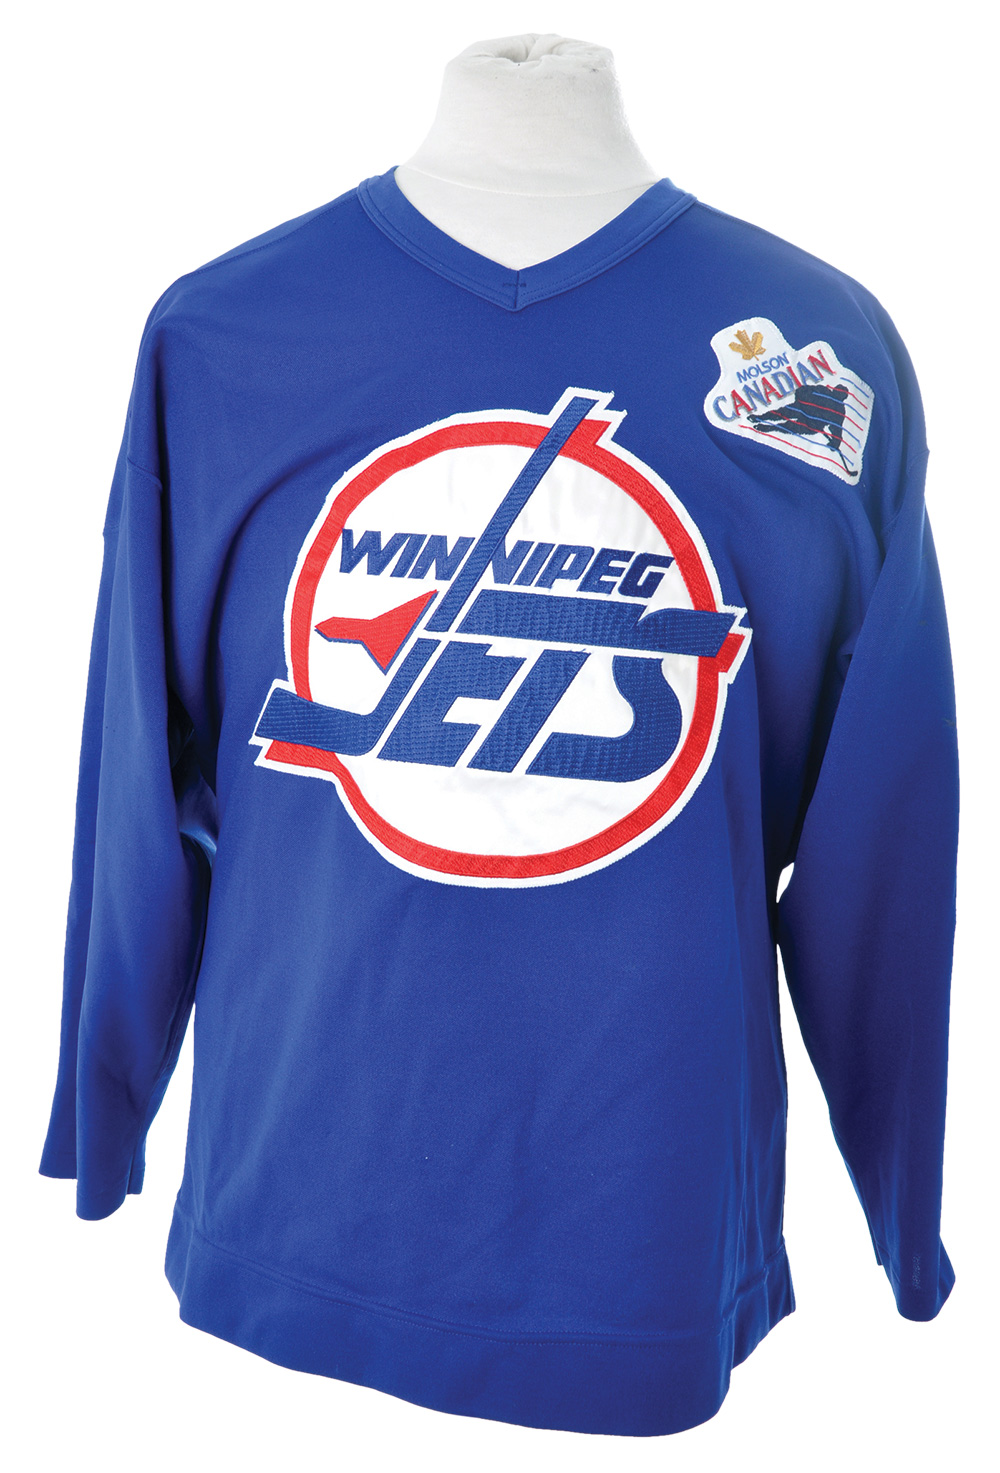 online store 41db1 3b37a Lot Detail - Winnipeg Jets 1990s Practice Jersey Collection of 2